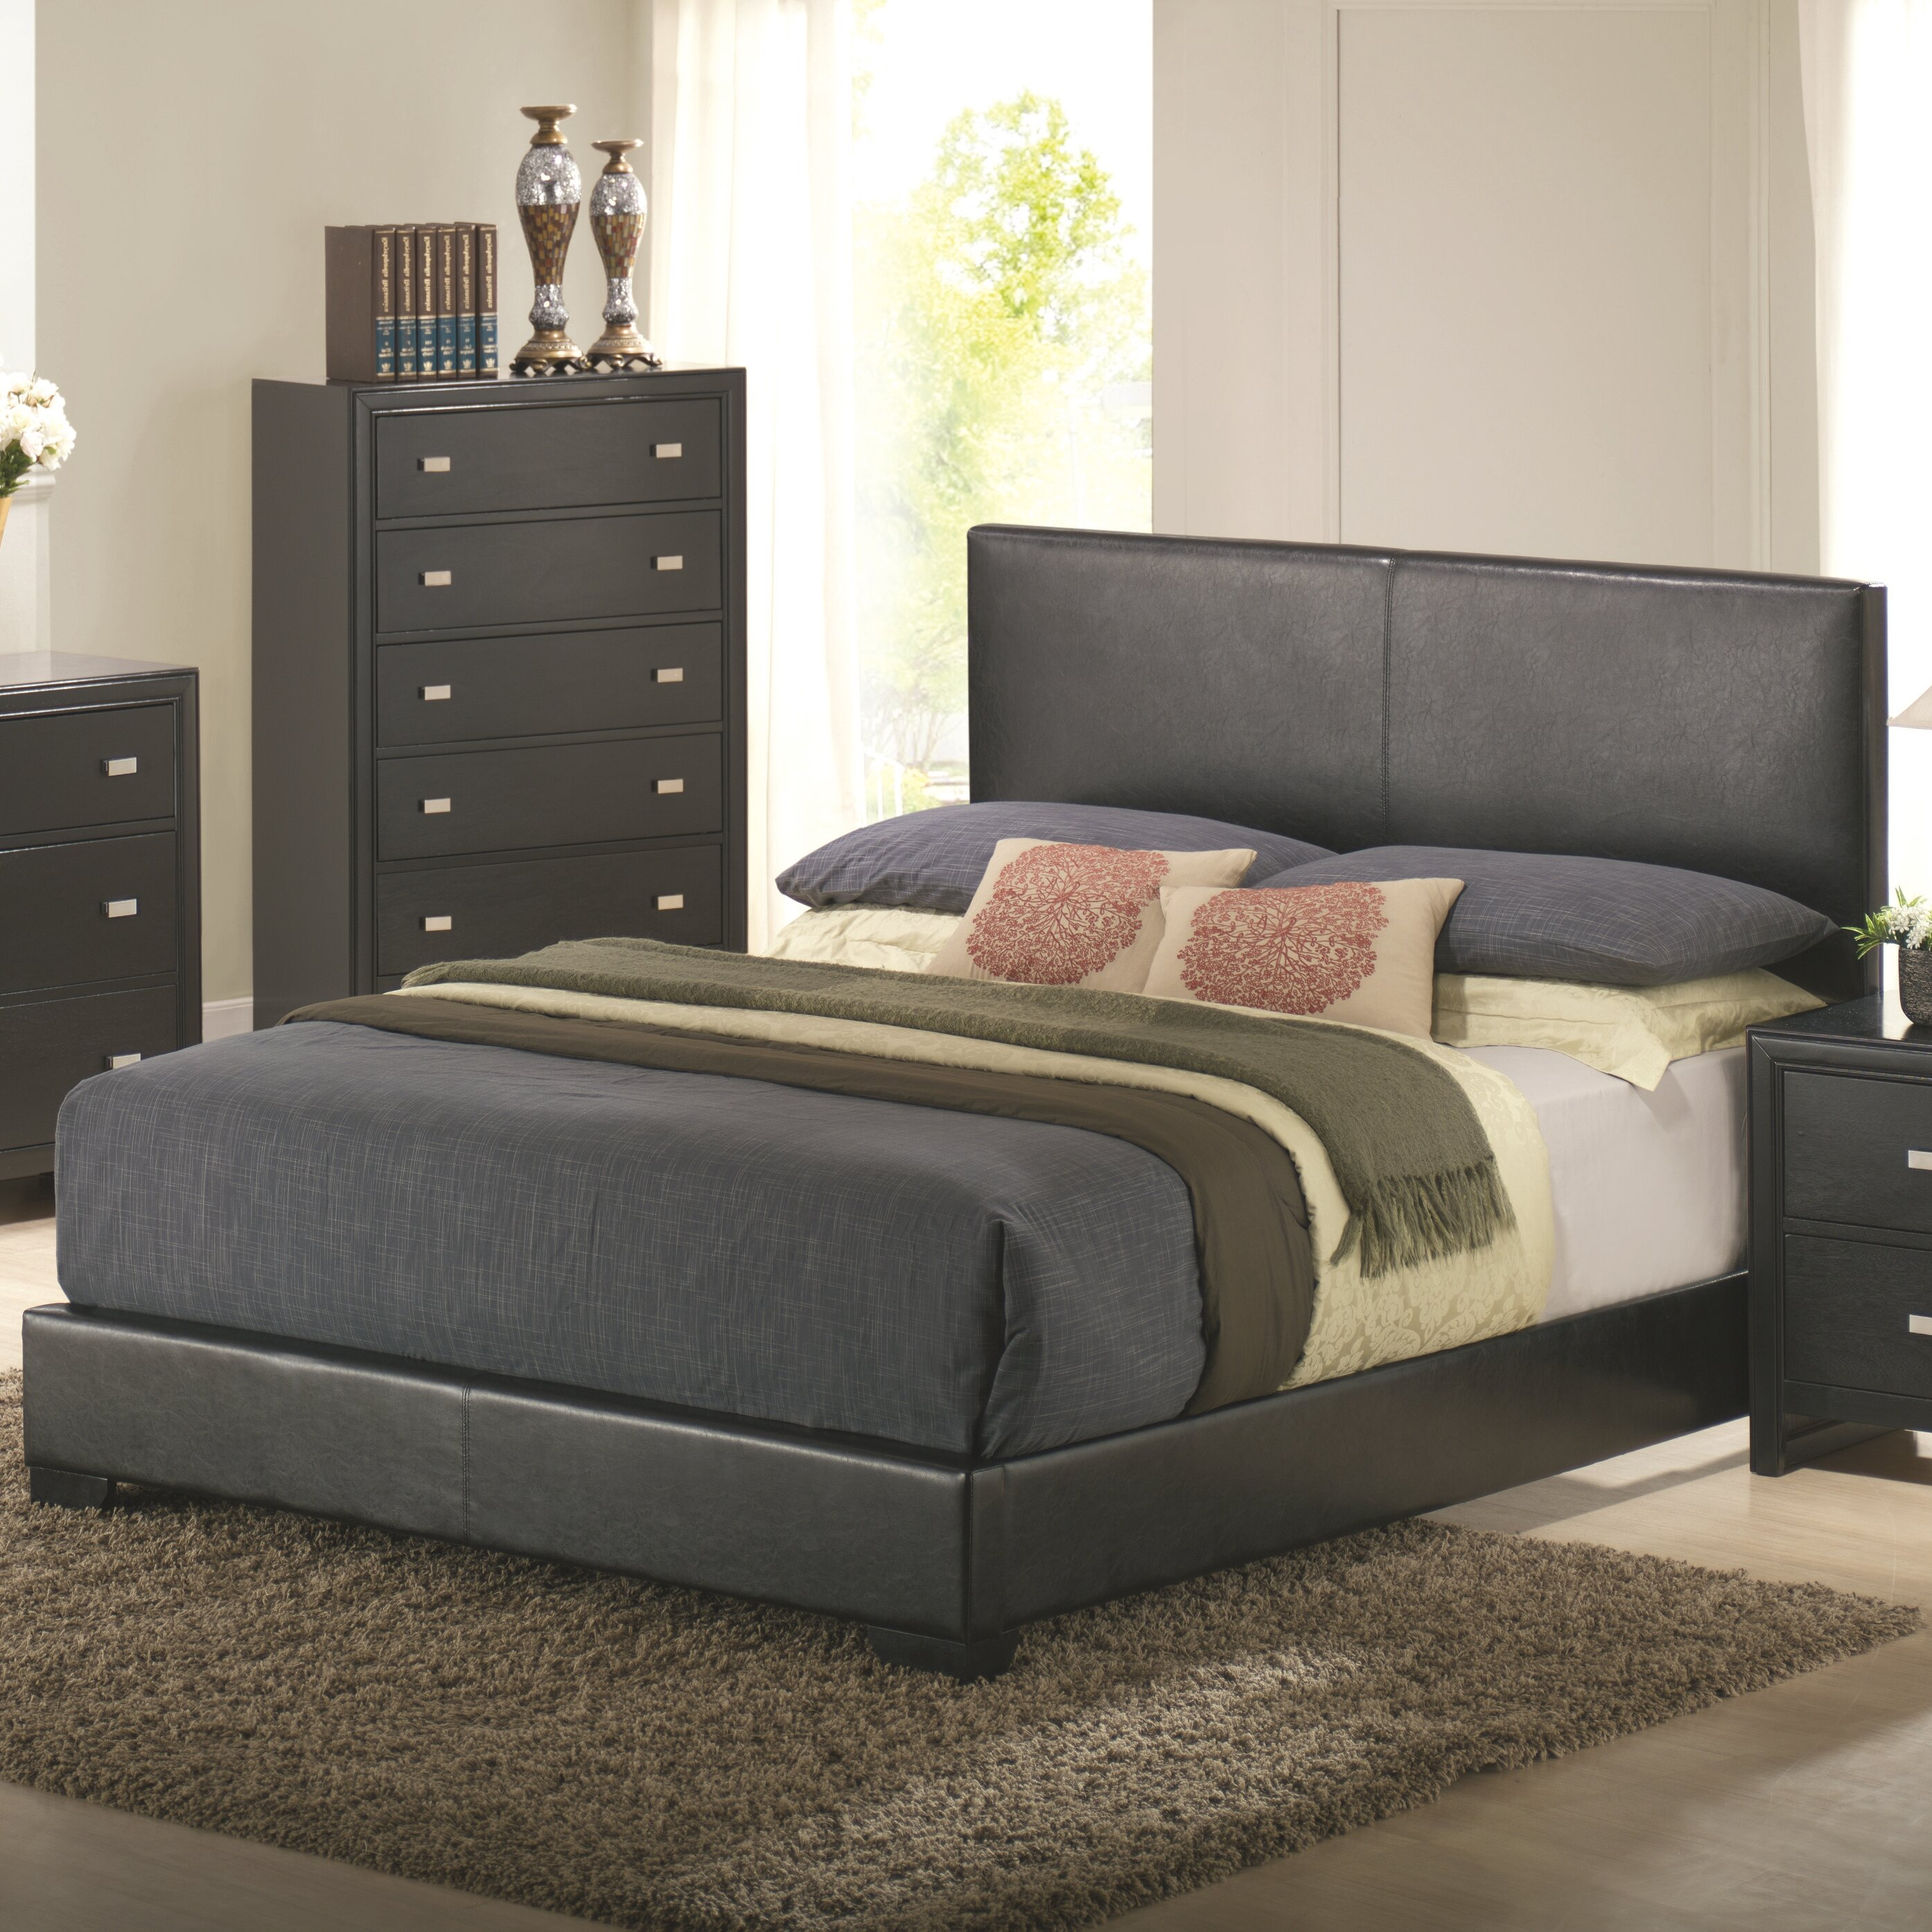 Wildon Home ® Kaspa Queen Platform Customizable Bedroom